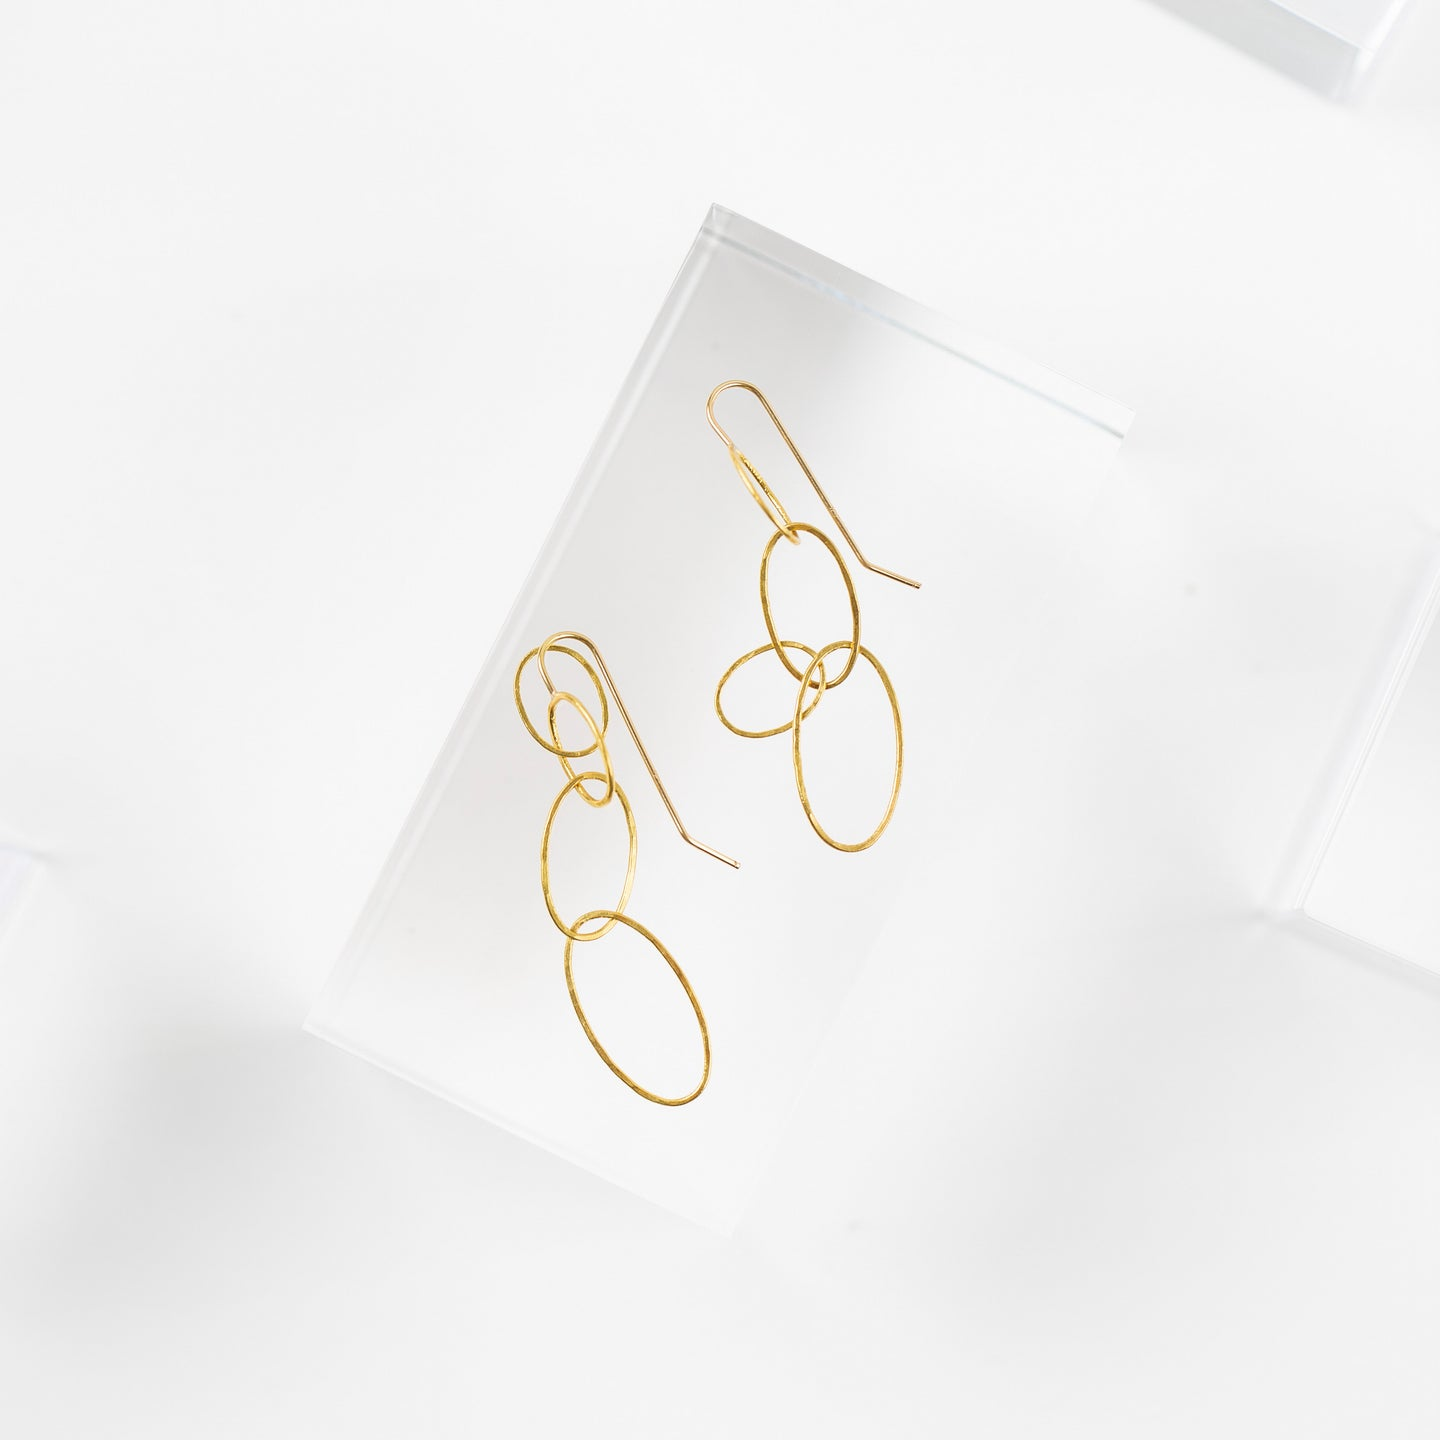 Rosanne Pugliese <br>Gold Triple Oval Earrings